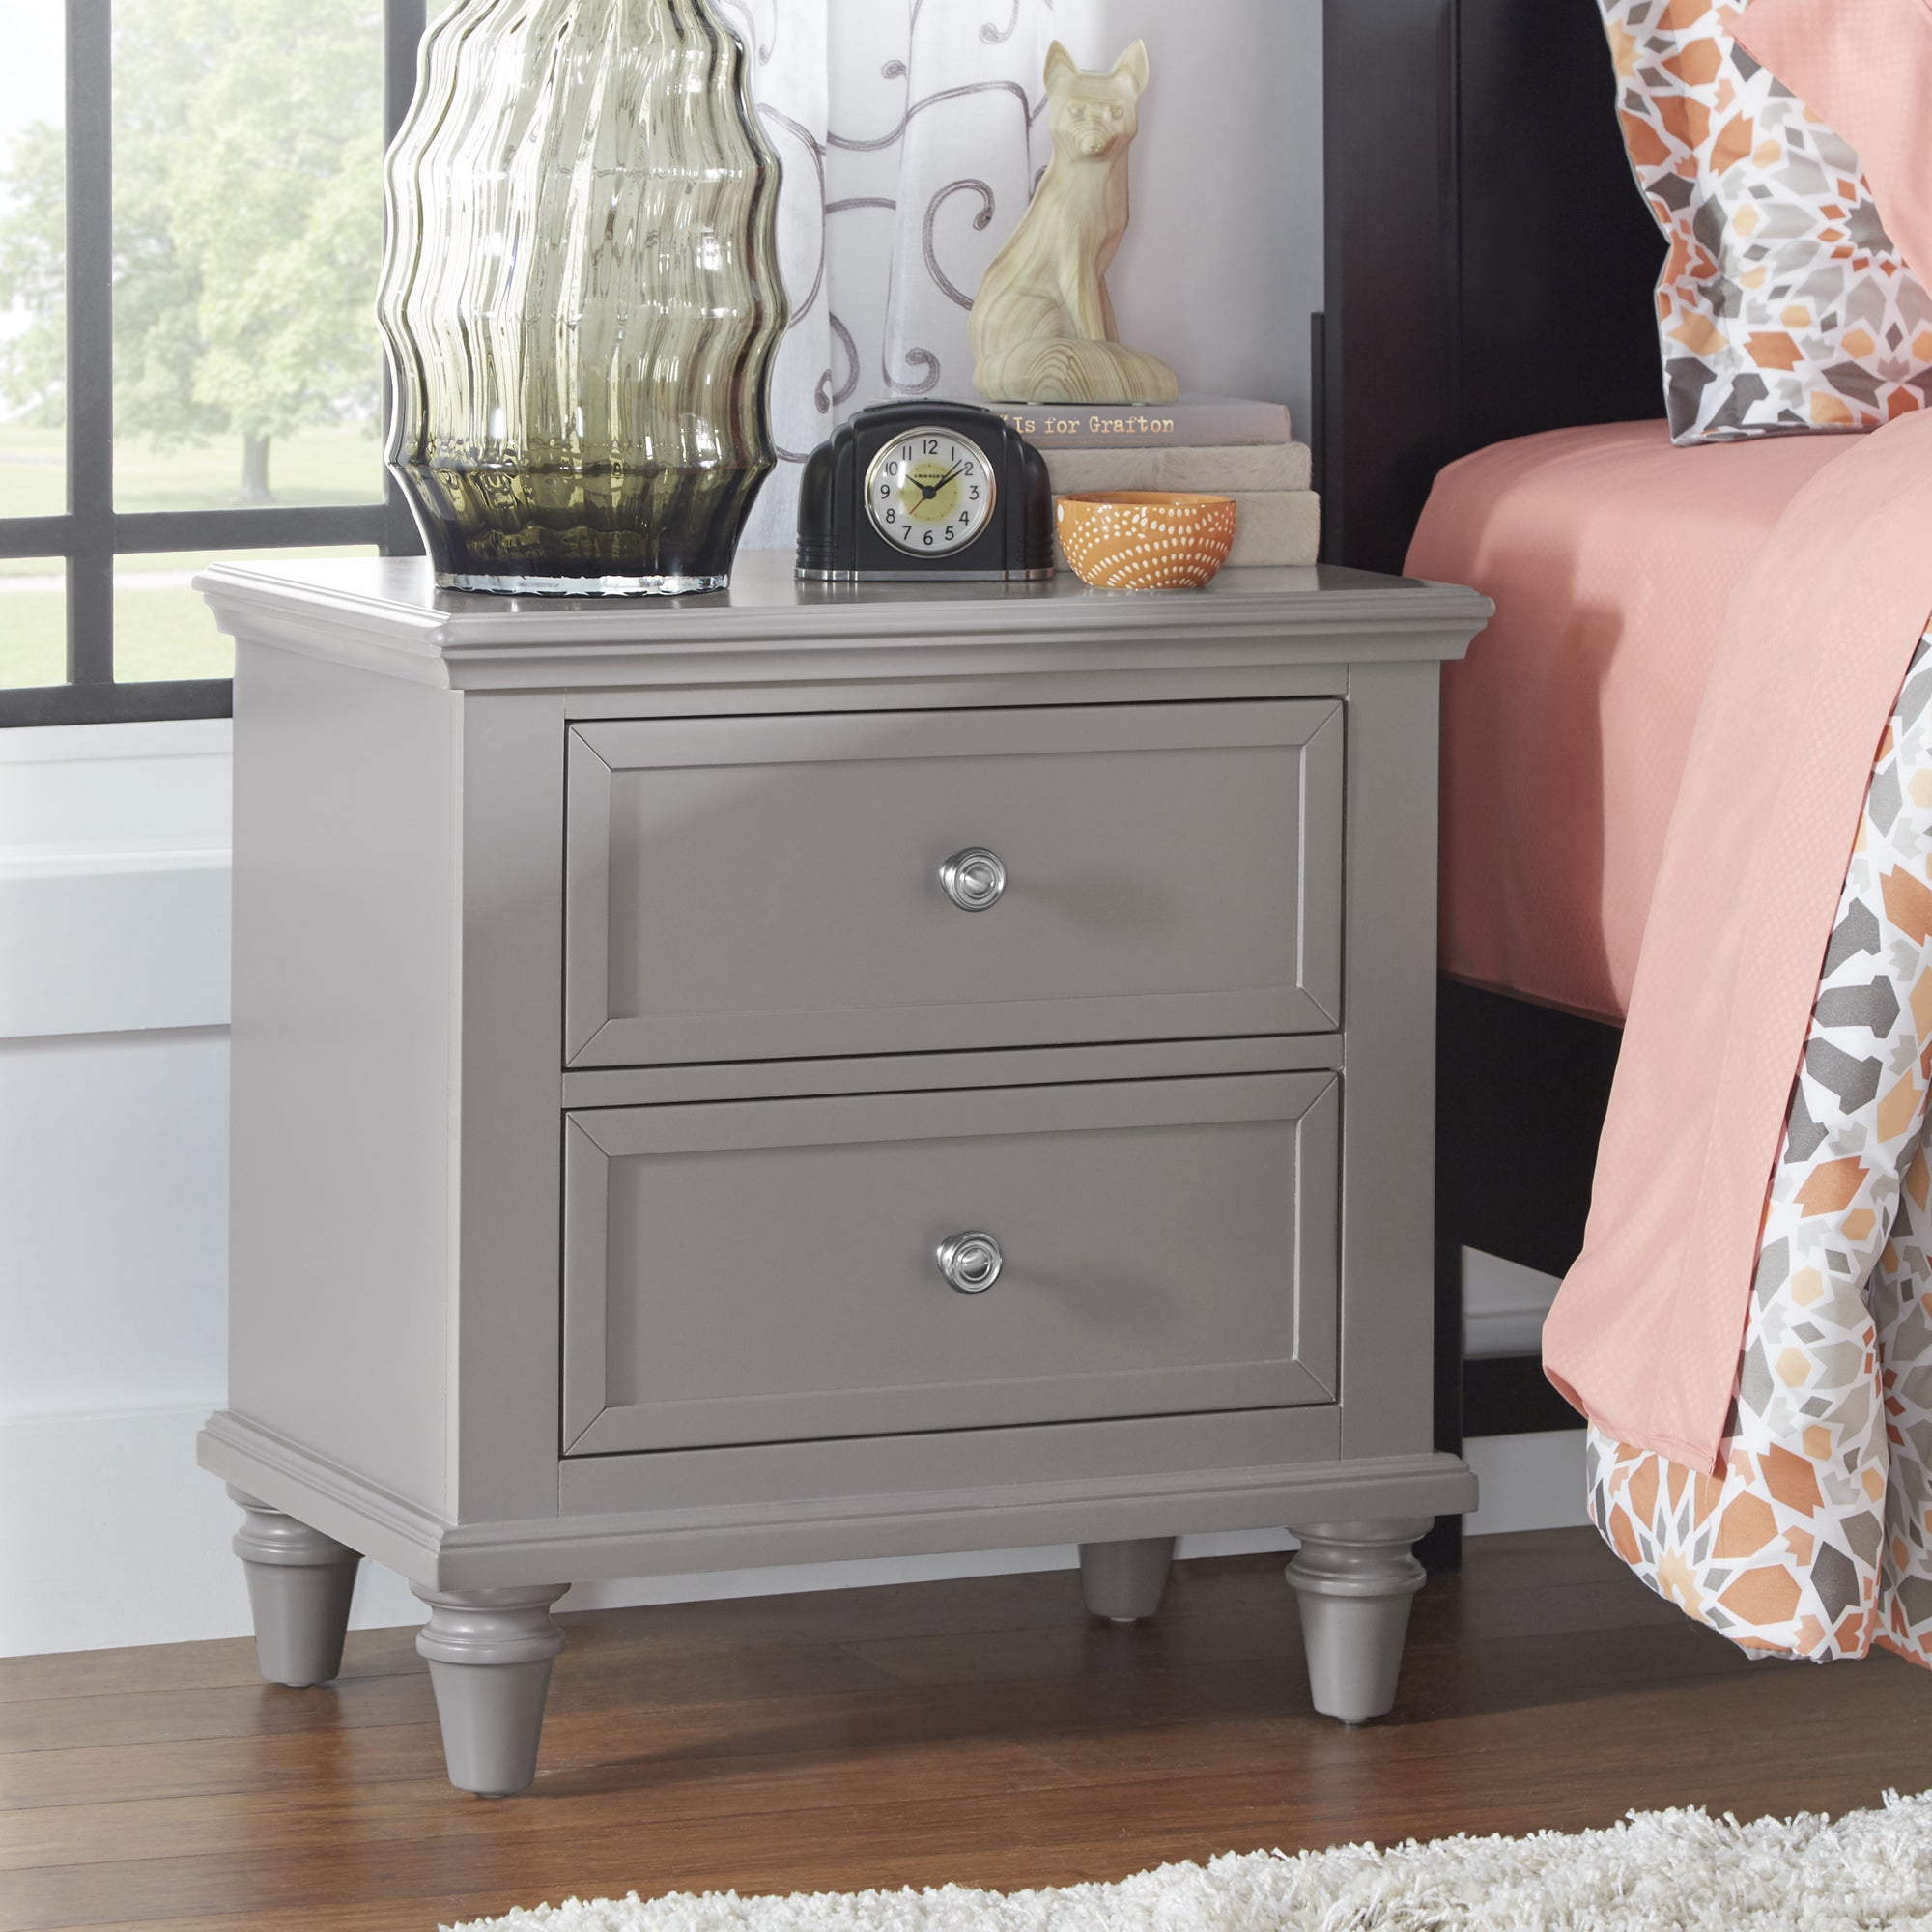 Preston-2-drawer-Side-Table-Nightstand-by-iNSPIRE-